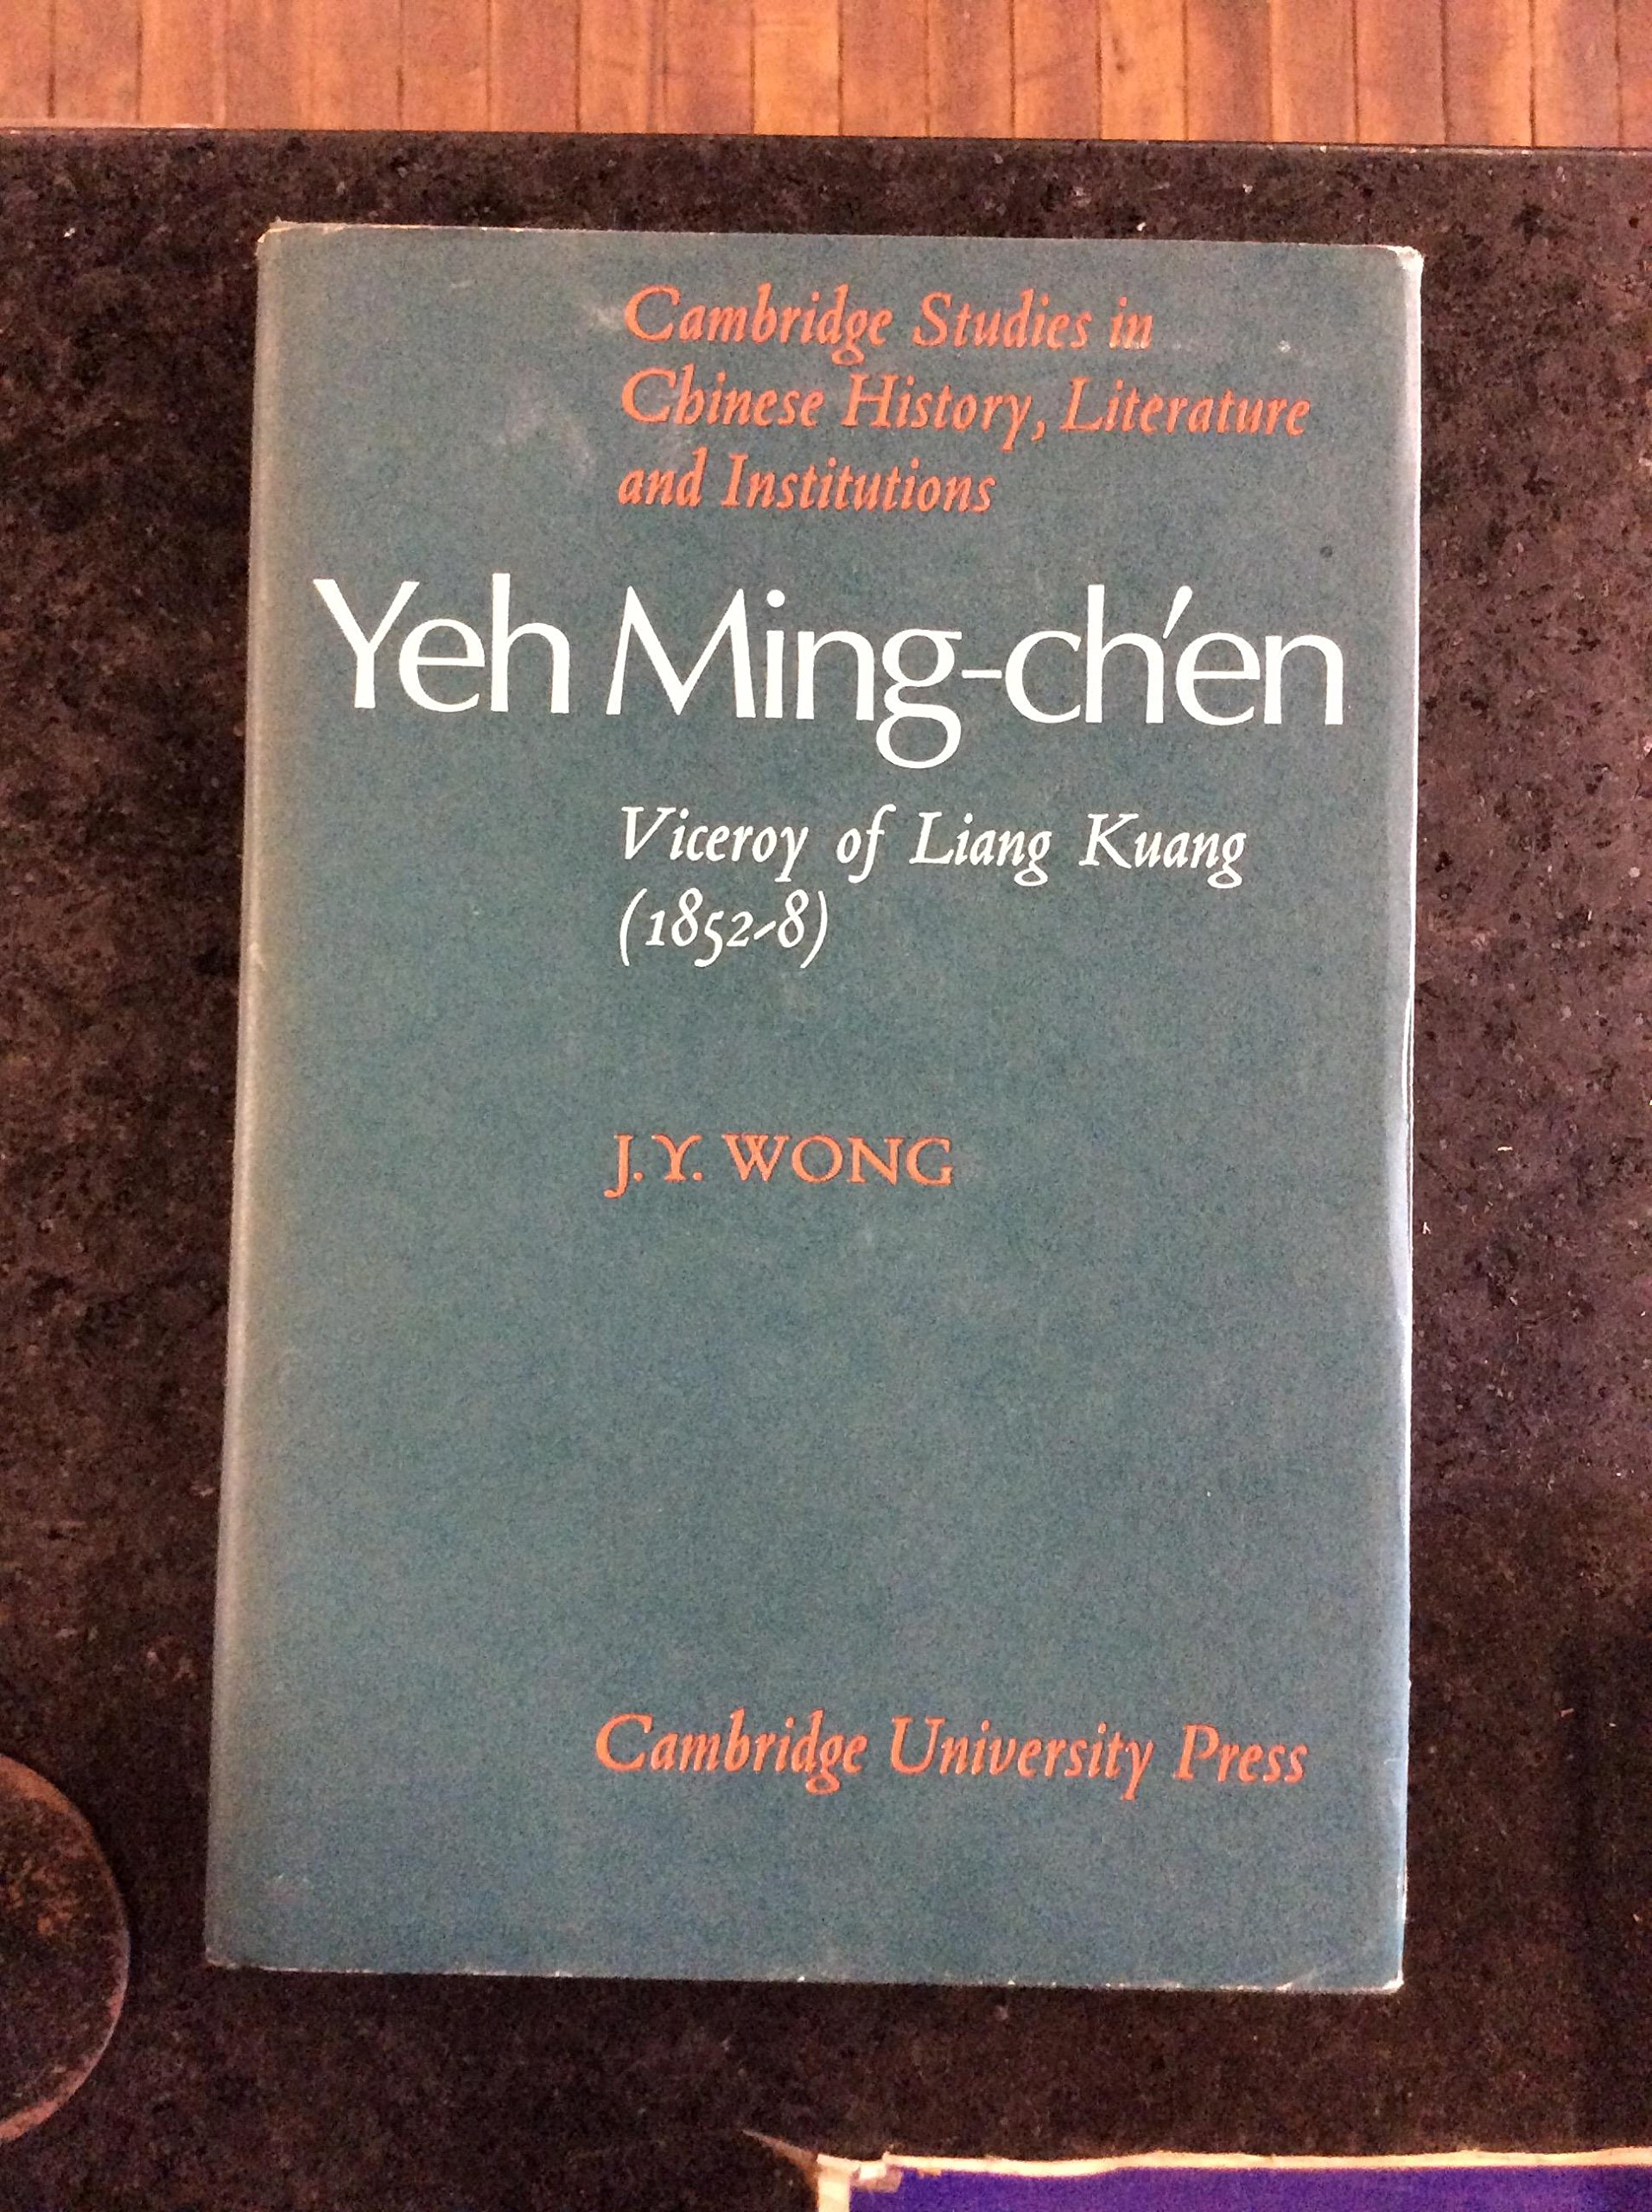 Yeh Ming-Ch'en: Viceroy of Liang Kuang 1852-8 (Cambridge Studies in Chinese History, Literature and Institutions)